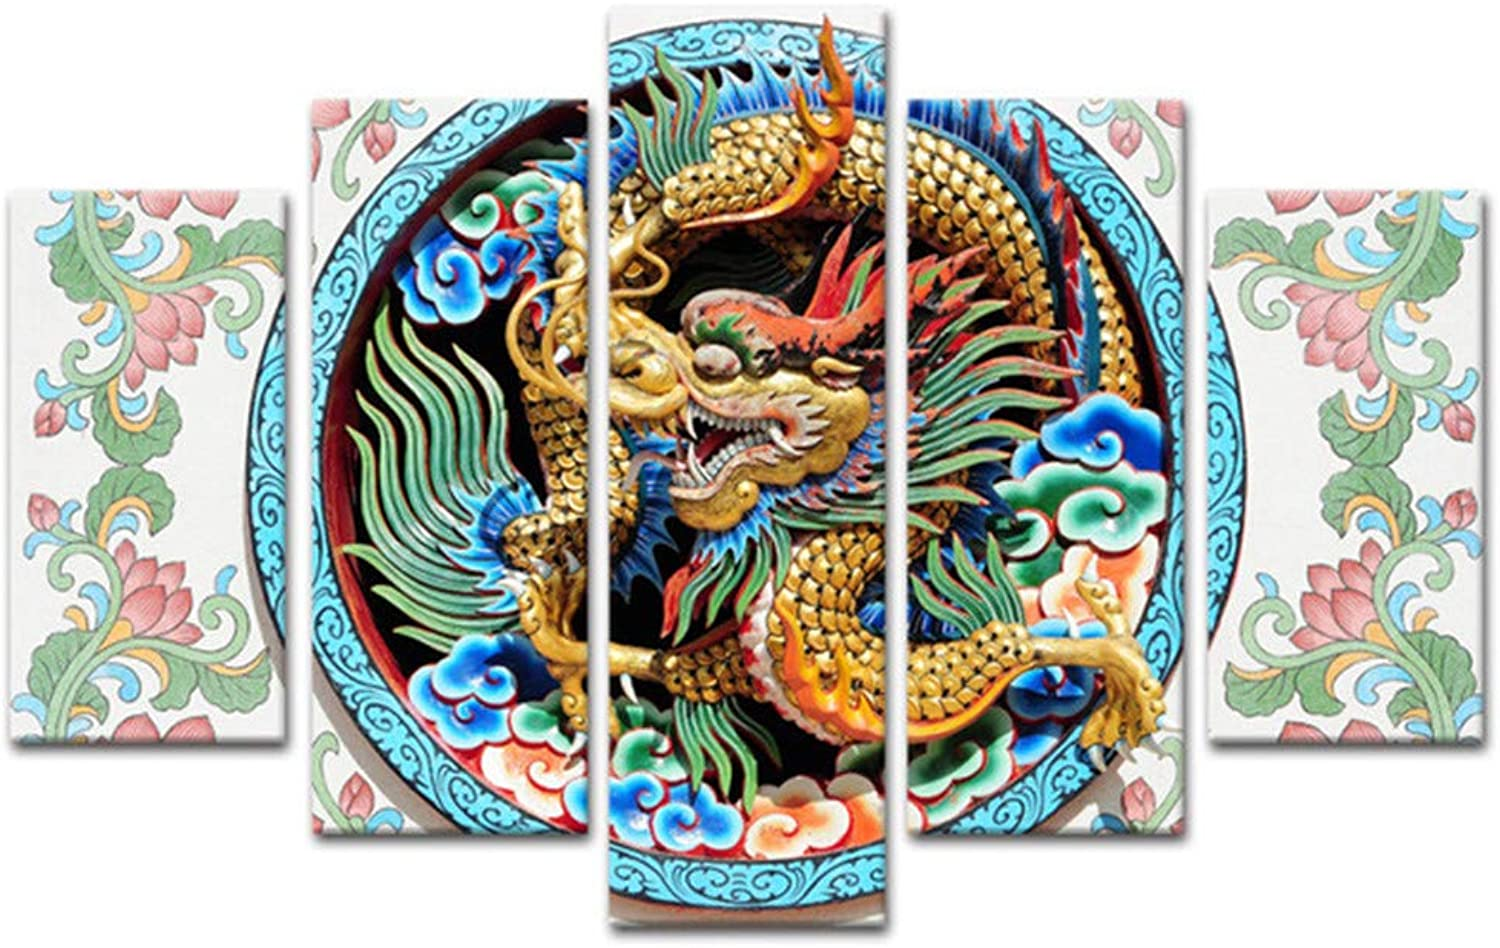 fc1c7b0e50 Loiazh Printed On Non Woven Canvas Wall Art Print Picture Photo 5 Pieces  Frameless Dragon Painting 55x22 45x20x2 35x20x2(cm) Image nvxles3333-new  toys